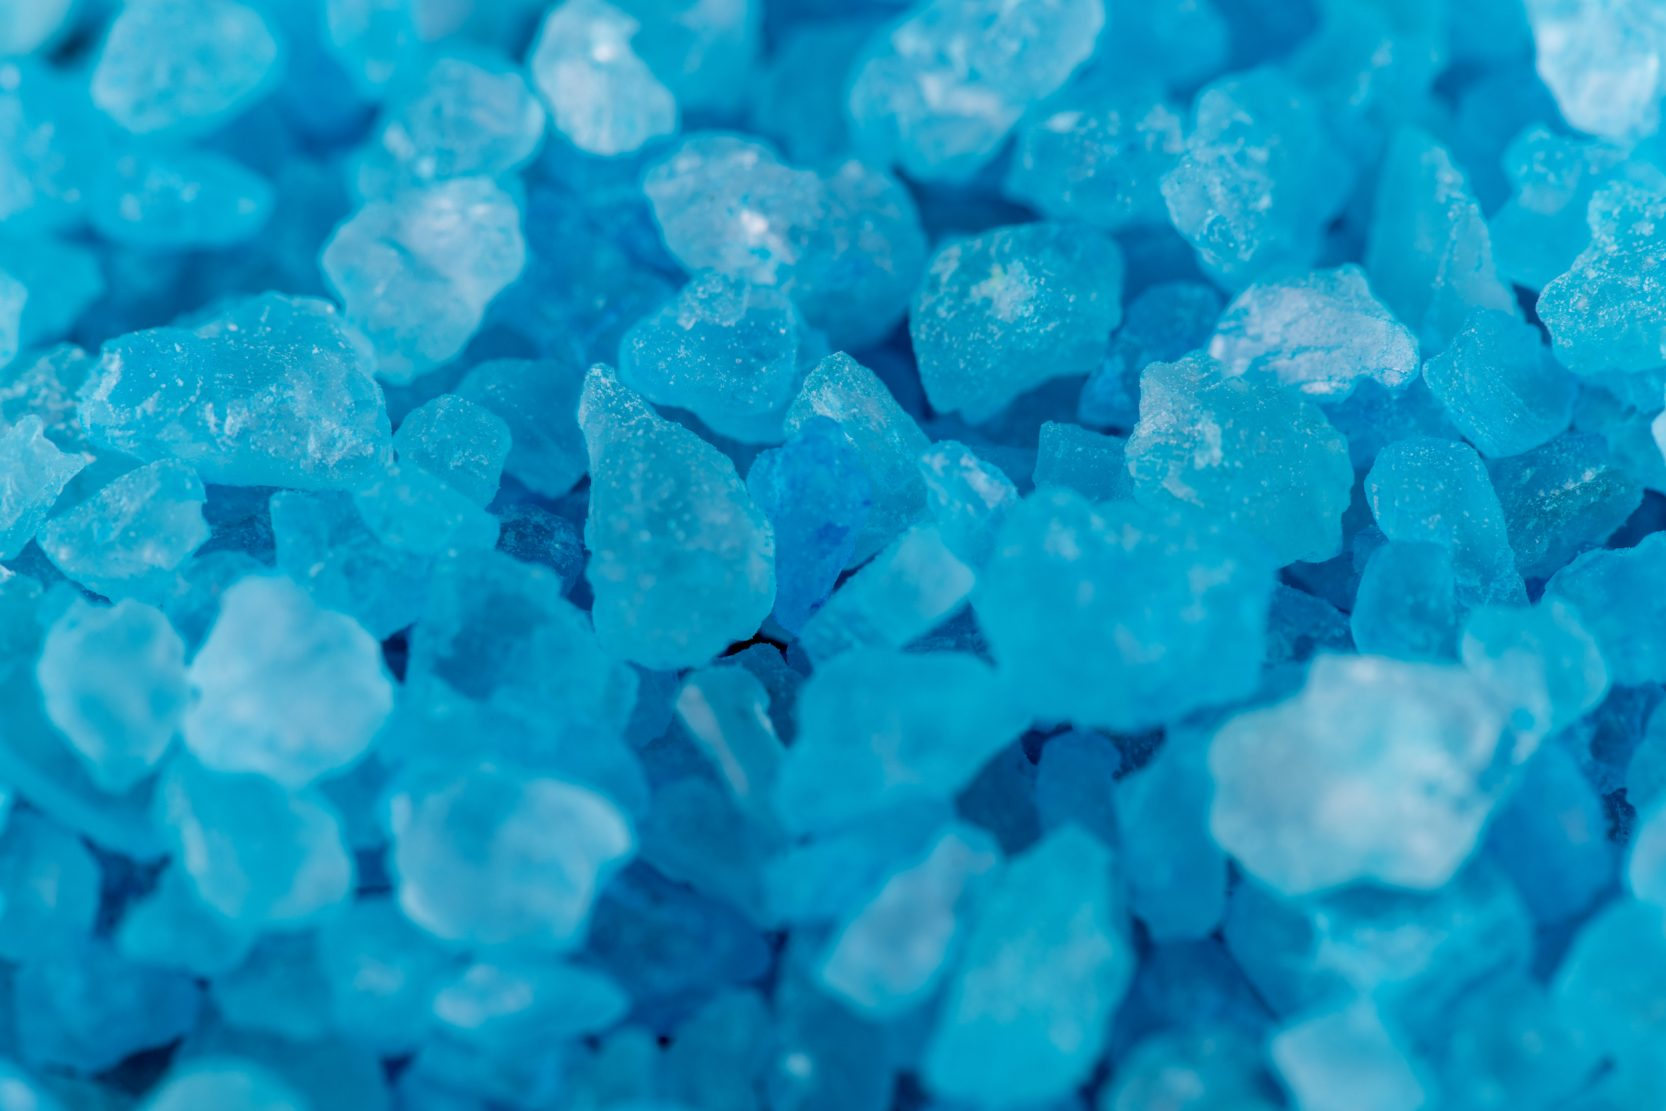 Customs thwart attempt to smuggle crystal meth into Qatar